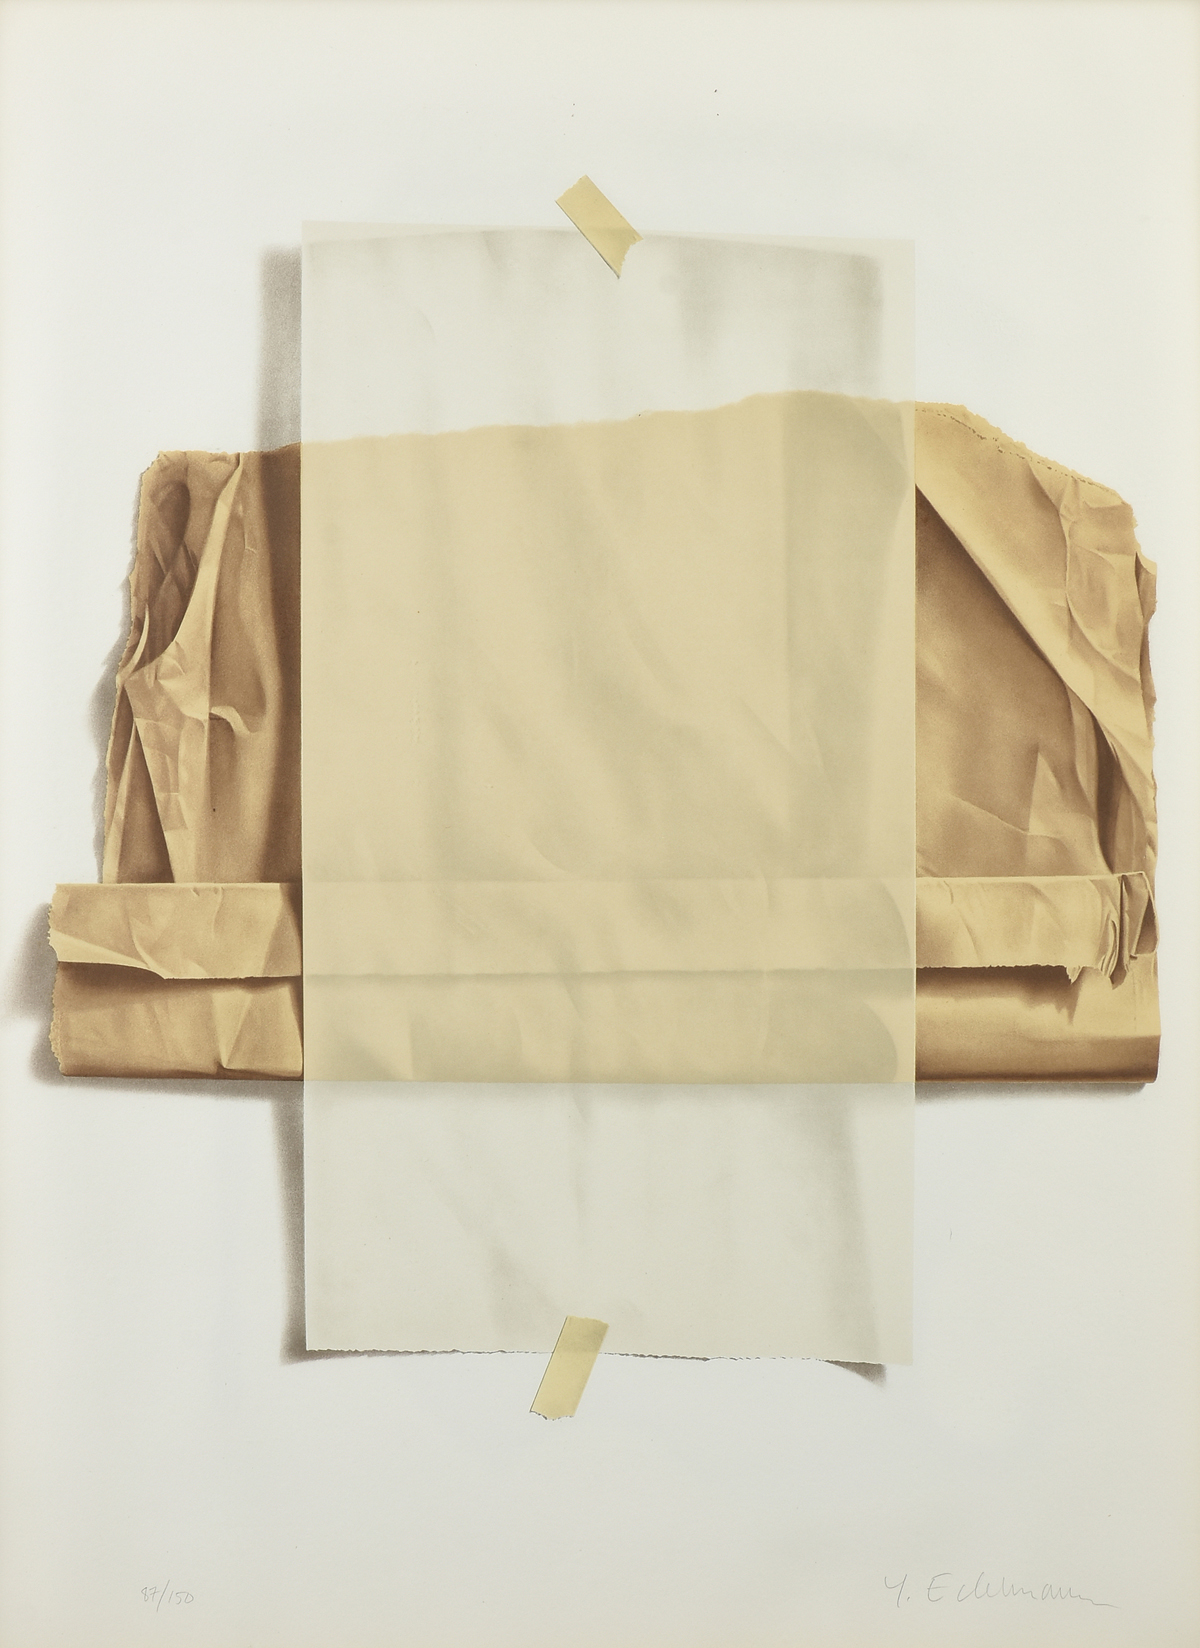 """Lot 27 - YRJO EDELMANN (Finnish 1941-2016) A PRINT, """"Wax and Brown Paper with Masking Tape,"""" color lithograph"""